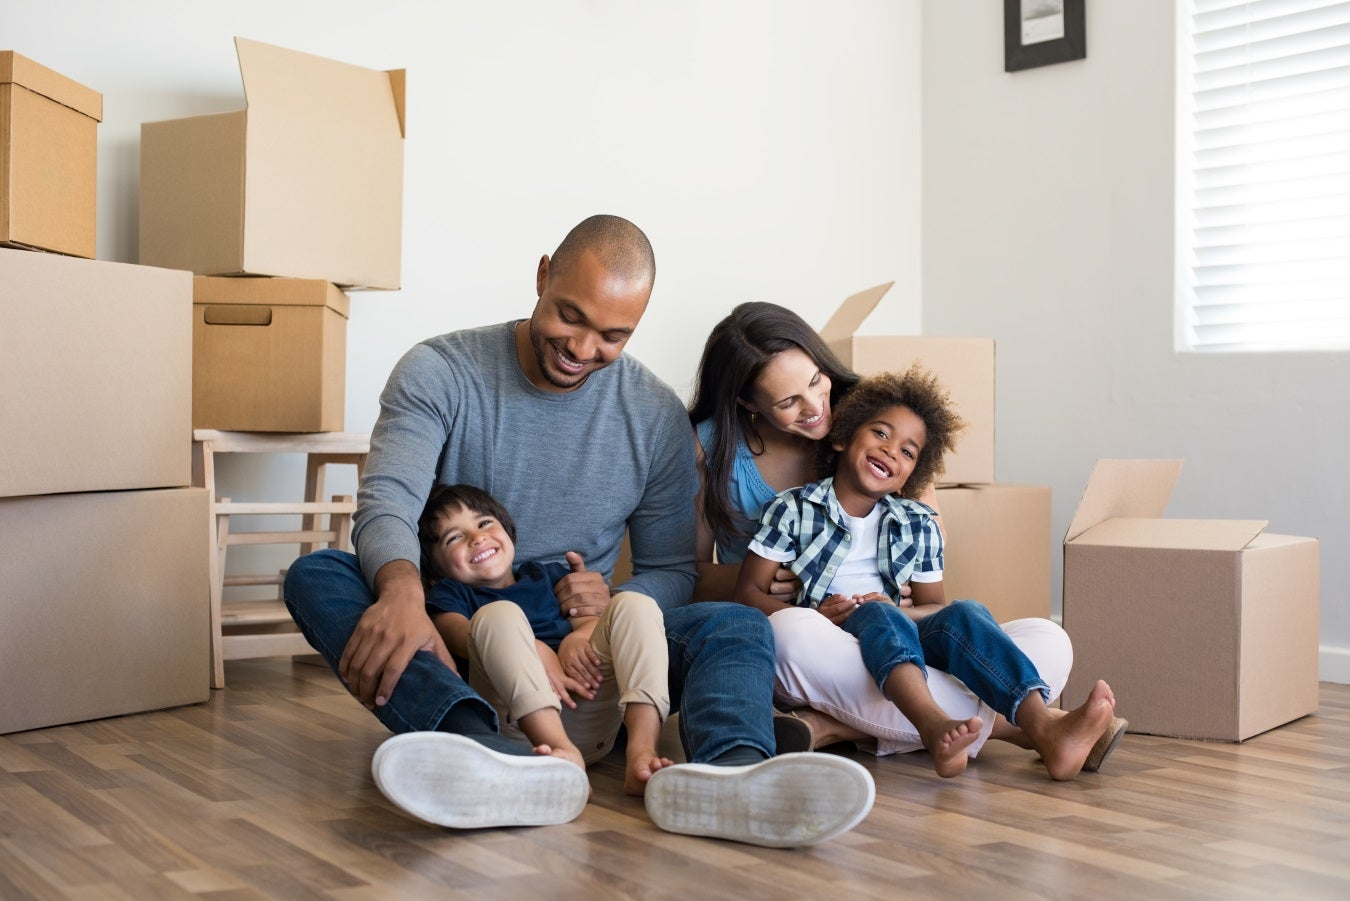 The best shipping insurance companies can make your move better